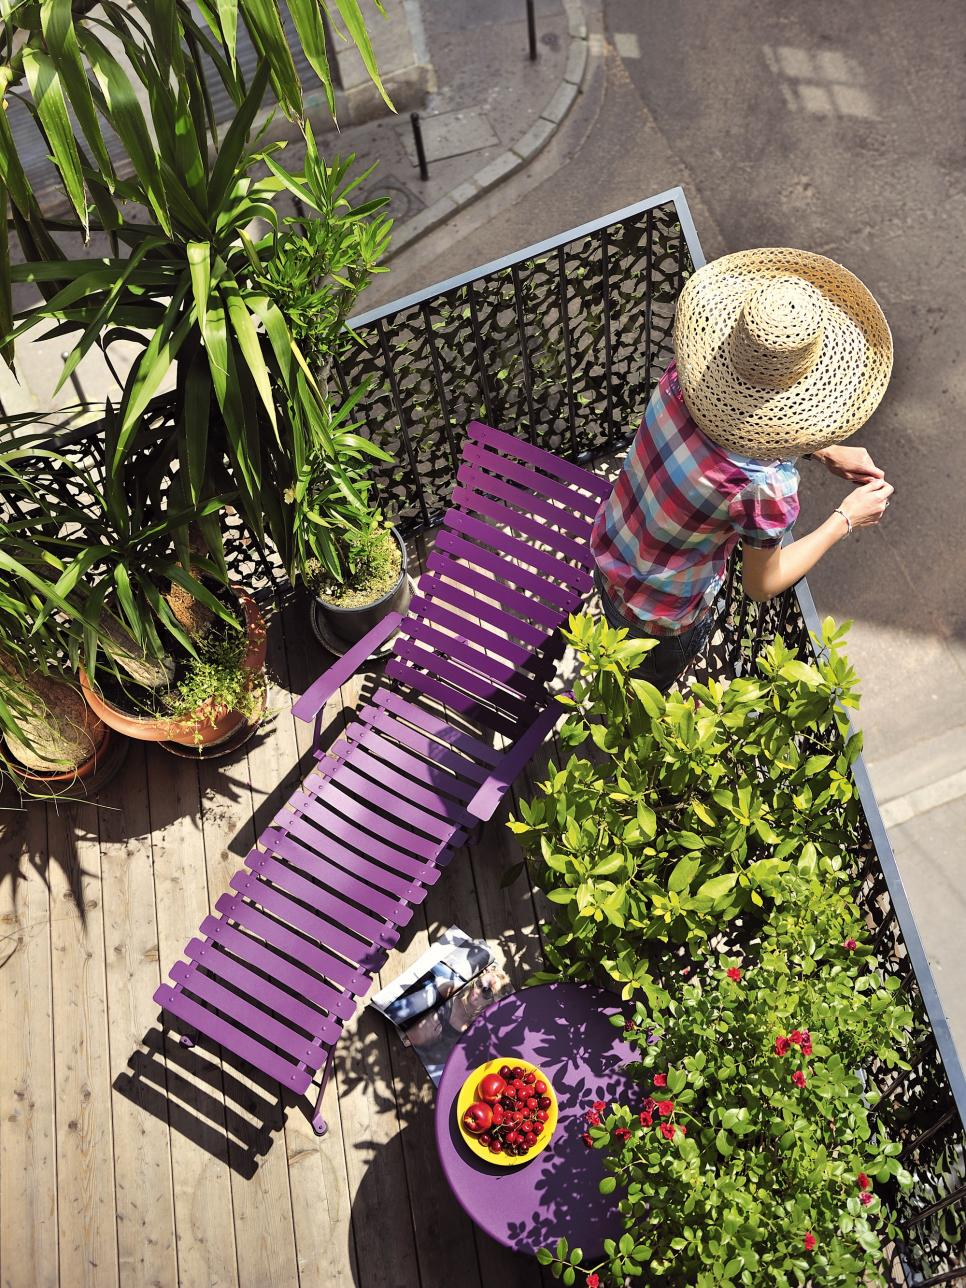 Purple balcony as a modern oasis within a busy city